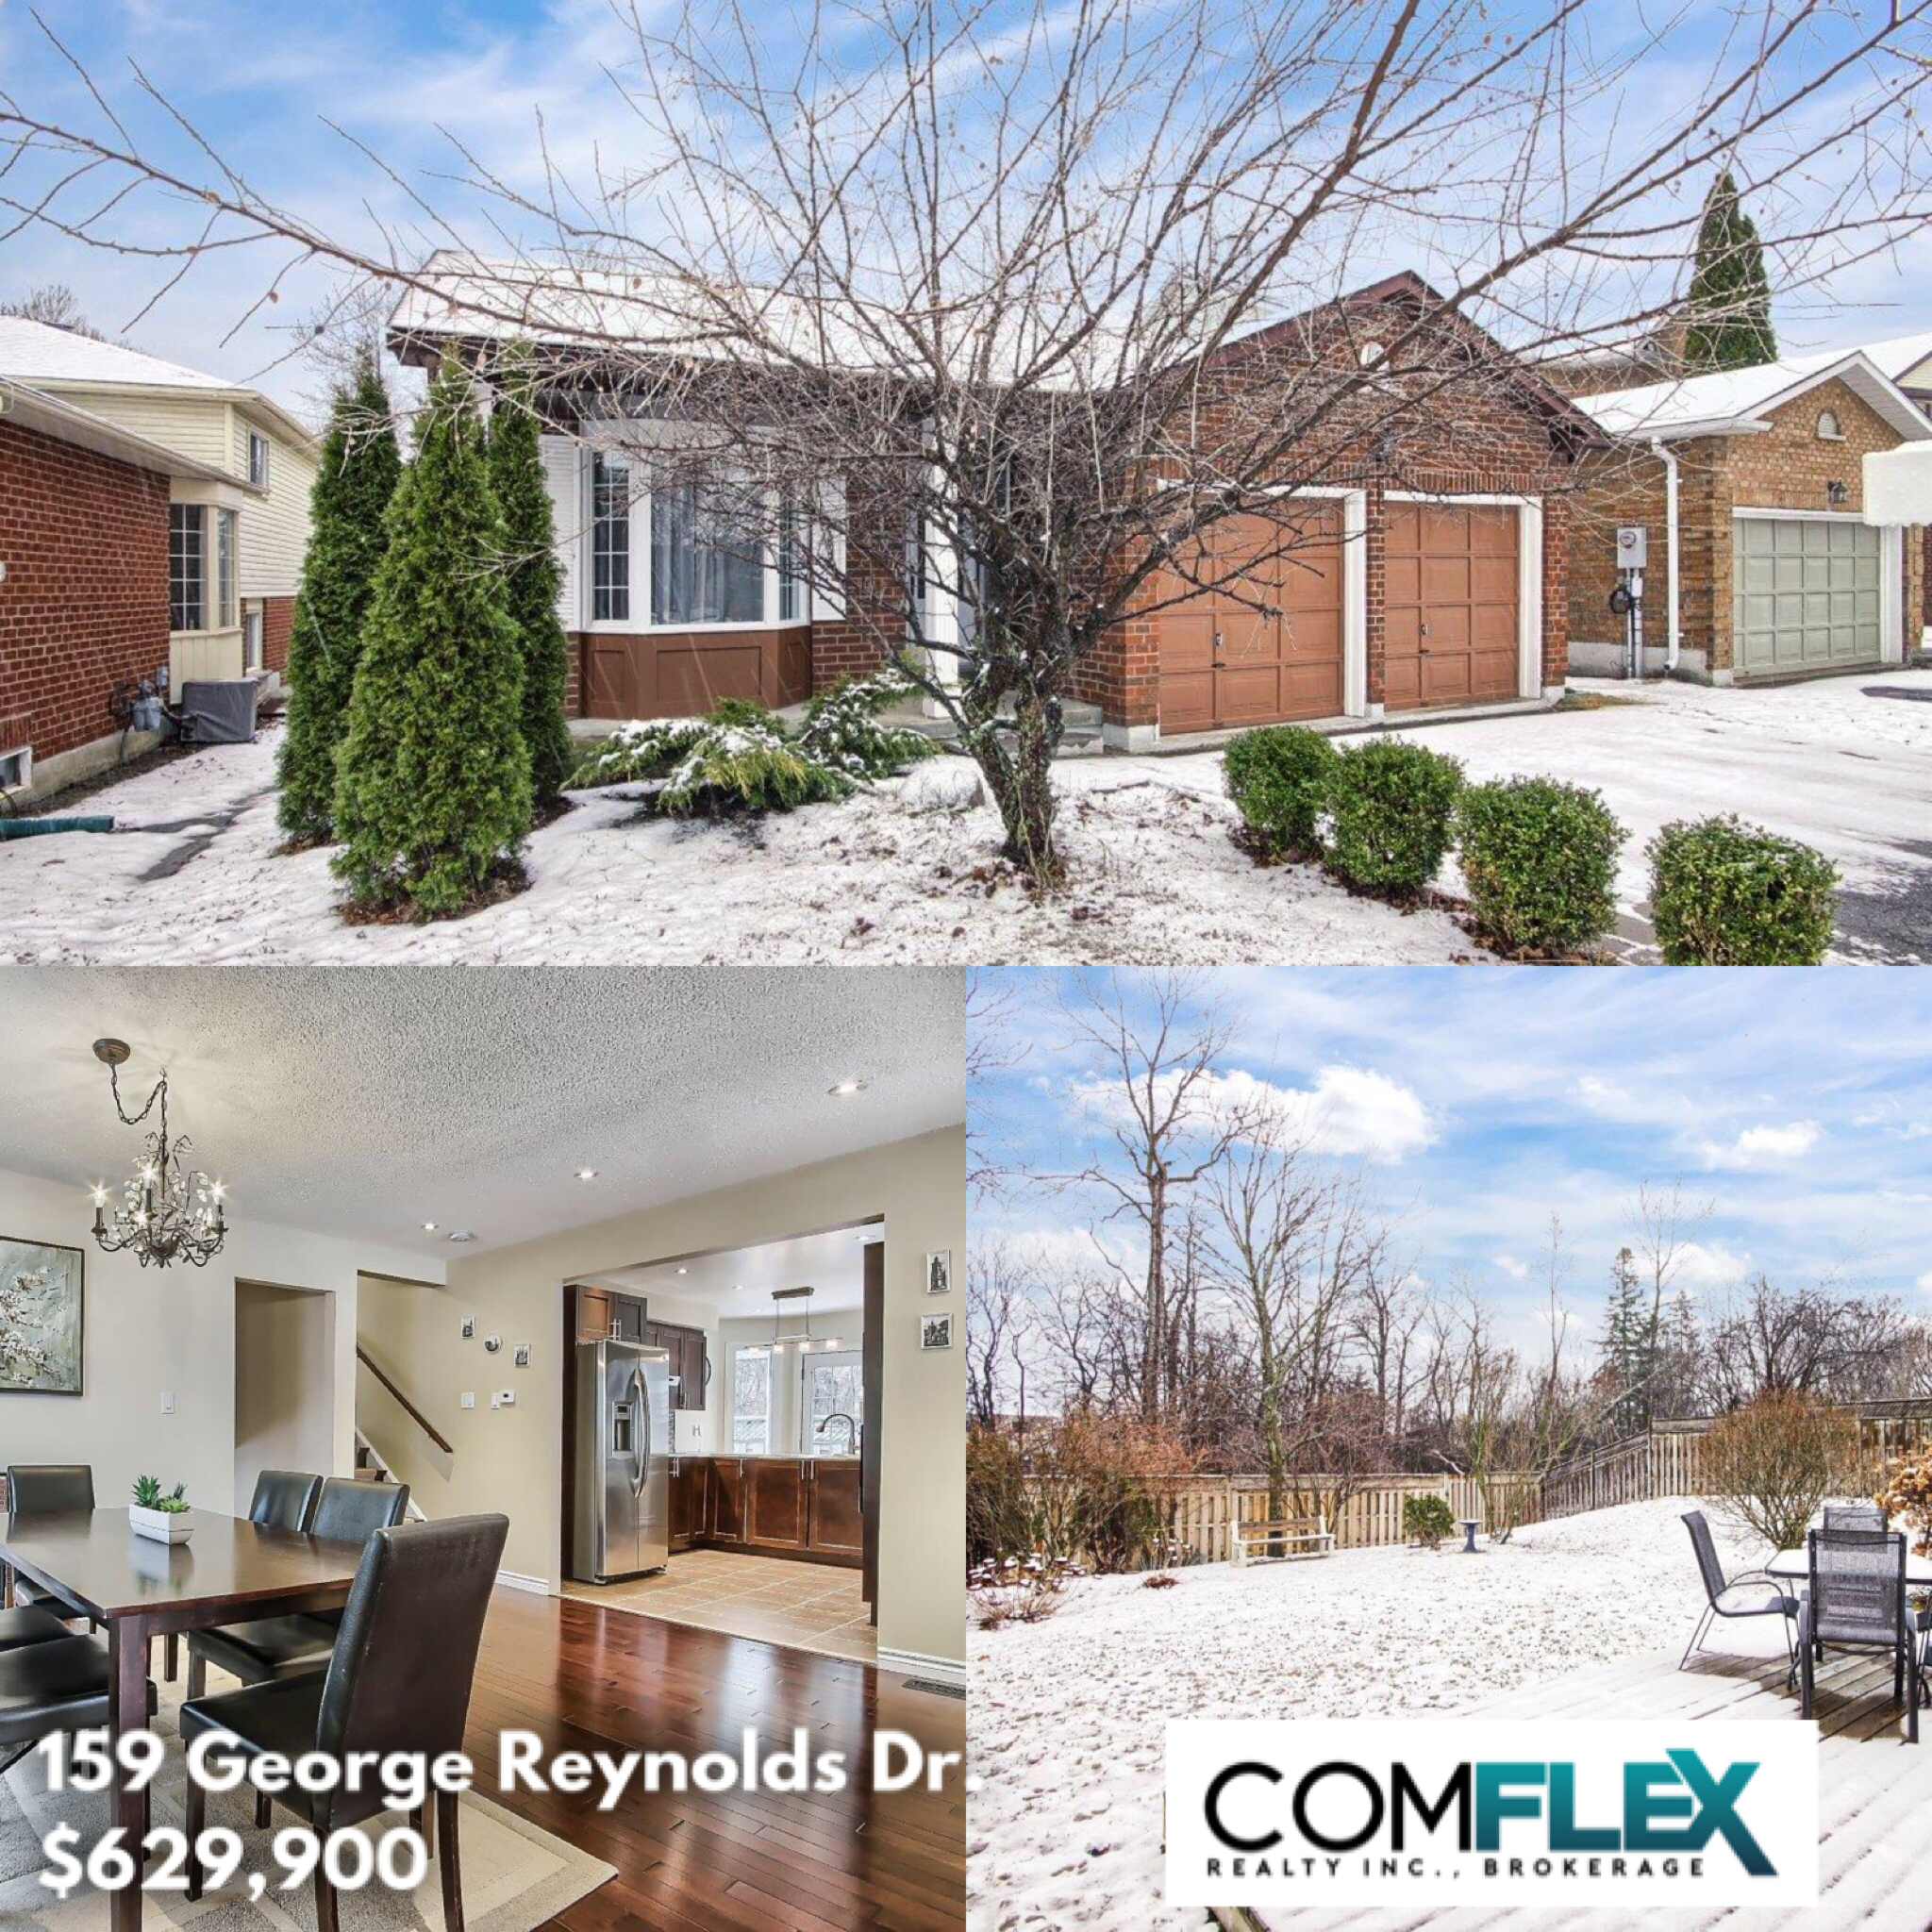 JUST LISTED! 159 GEORGE REYNOLDS DR., COURTICE